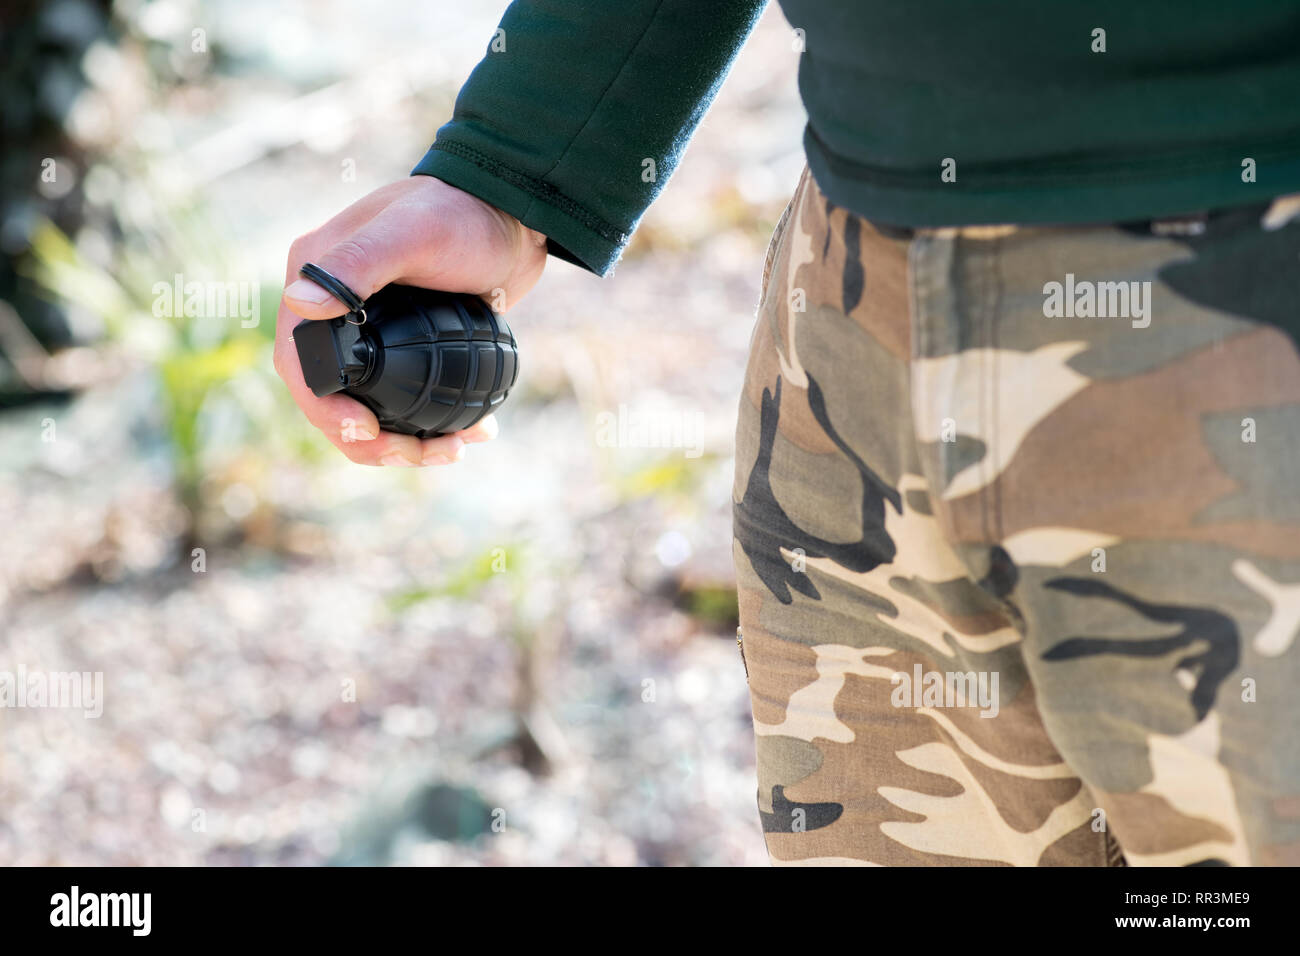 Close up on the hand of a man holding a grenade outdoors in a concept of terrorism or combat - Stock Image